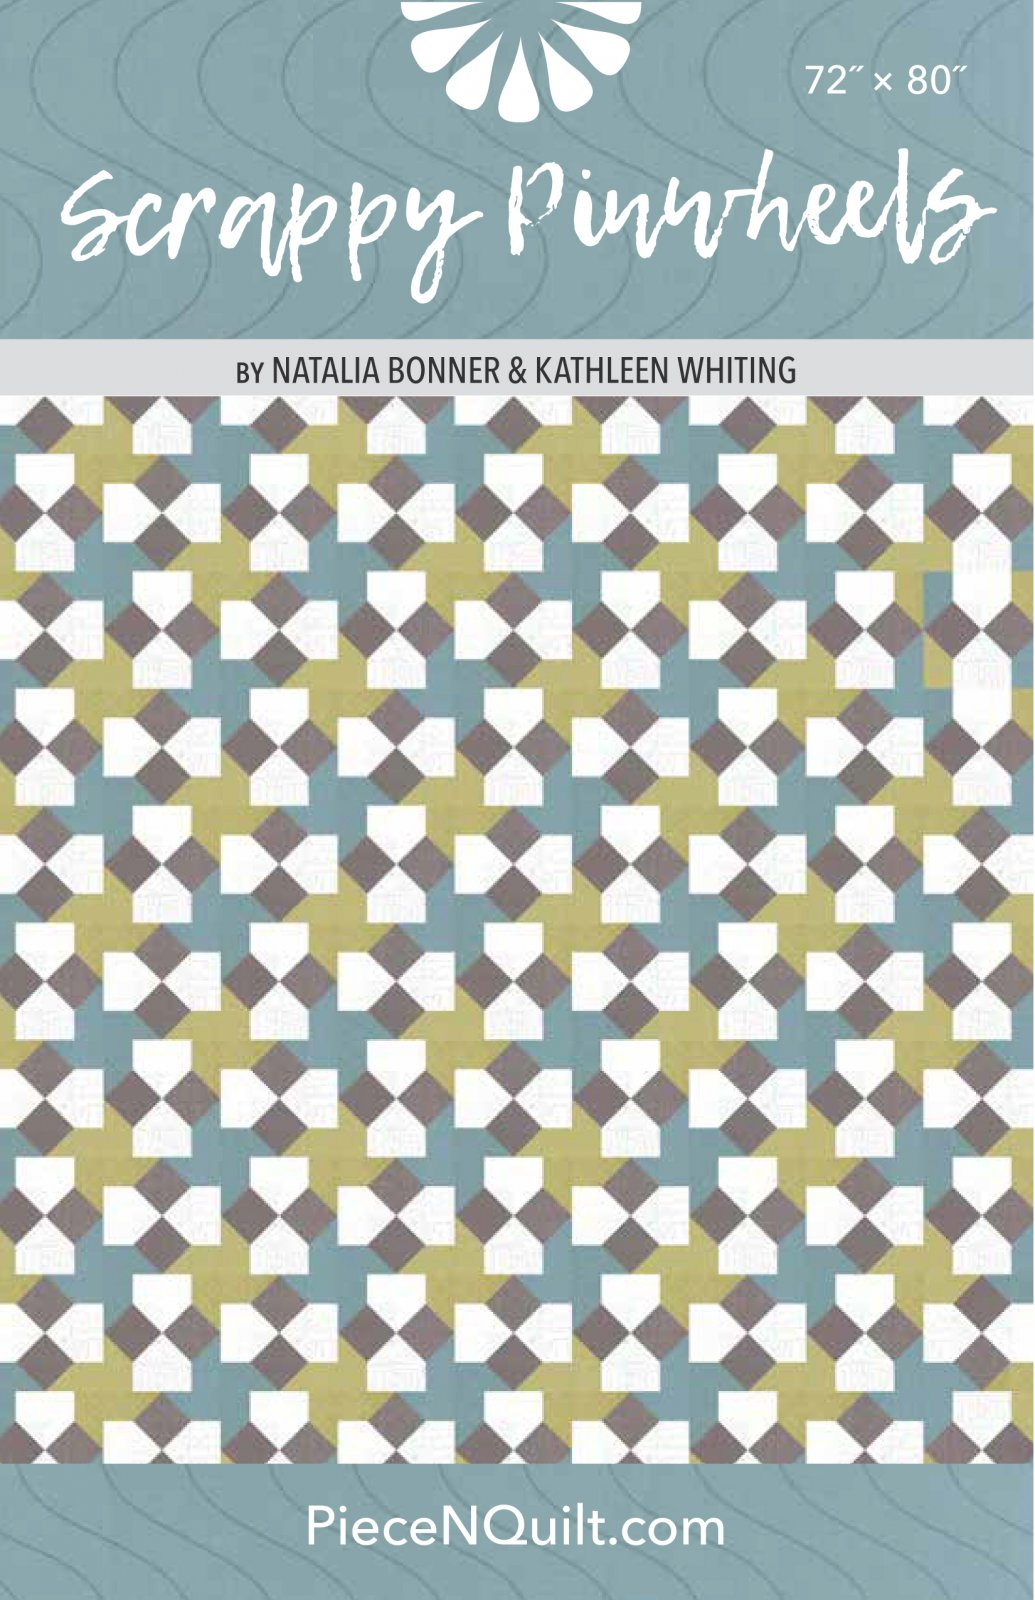 Scrappy Pinwheels Quilt Pattern - PDF Version